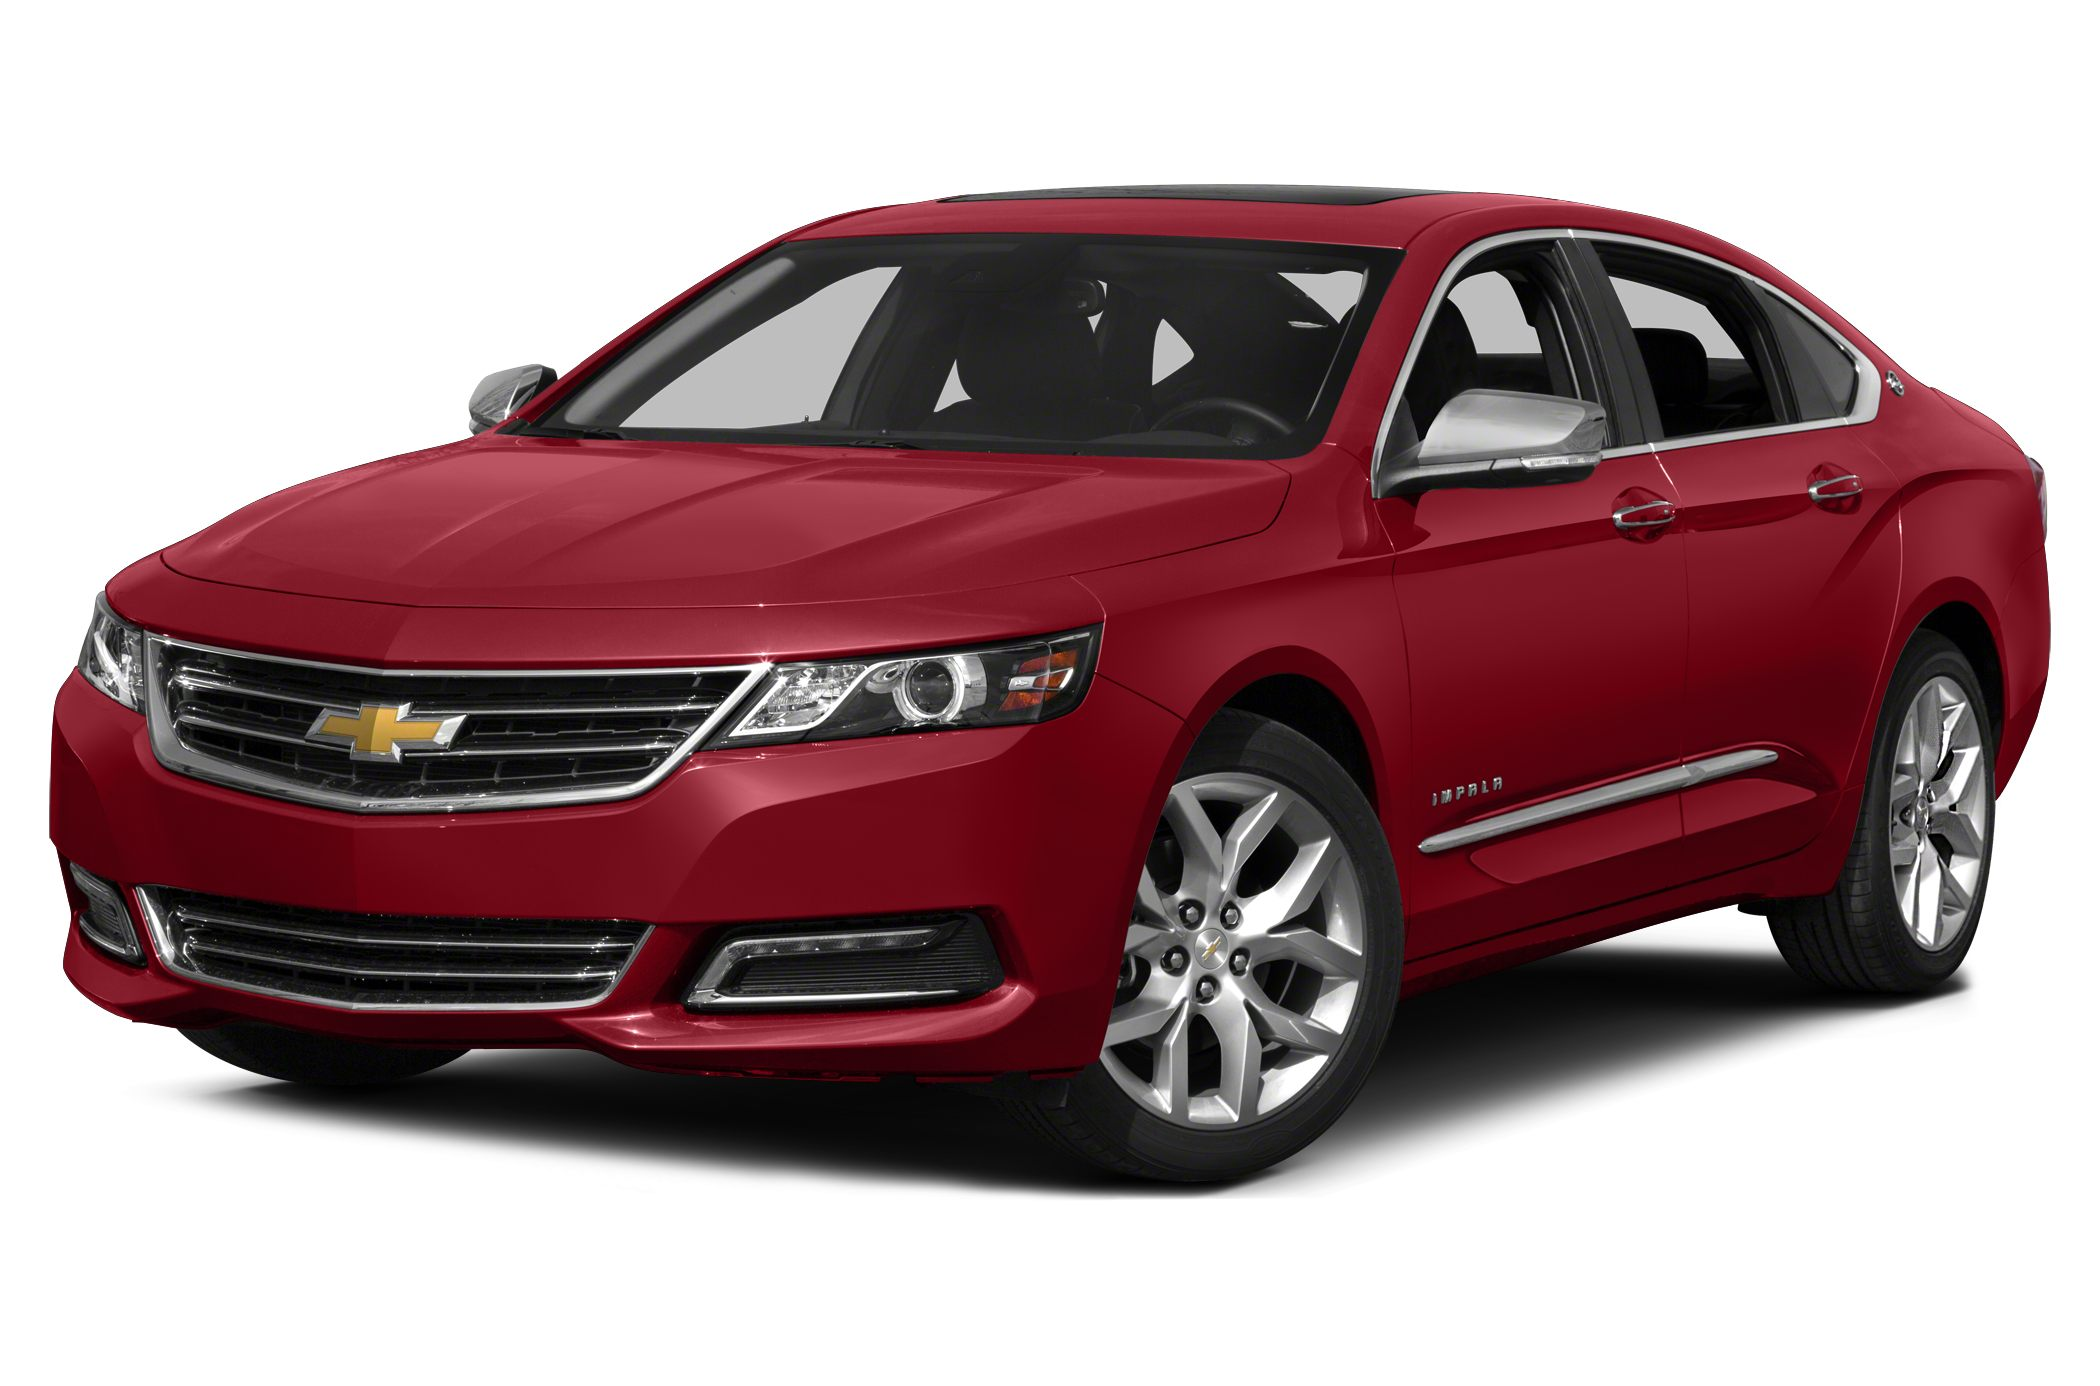 2014 Chevrolet Impala 1LT Sedan for sale in Massena for $31,750 with 0 miles